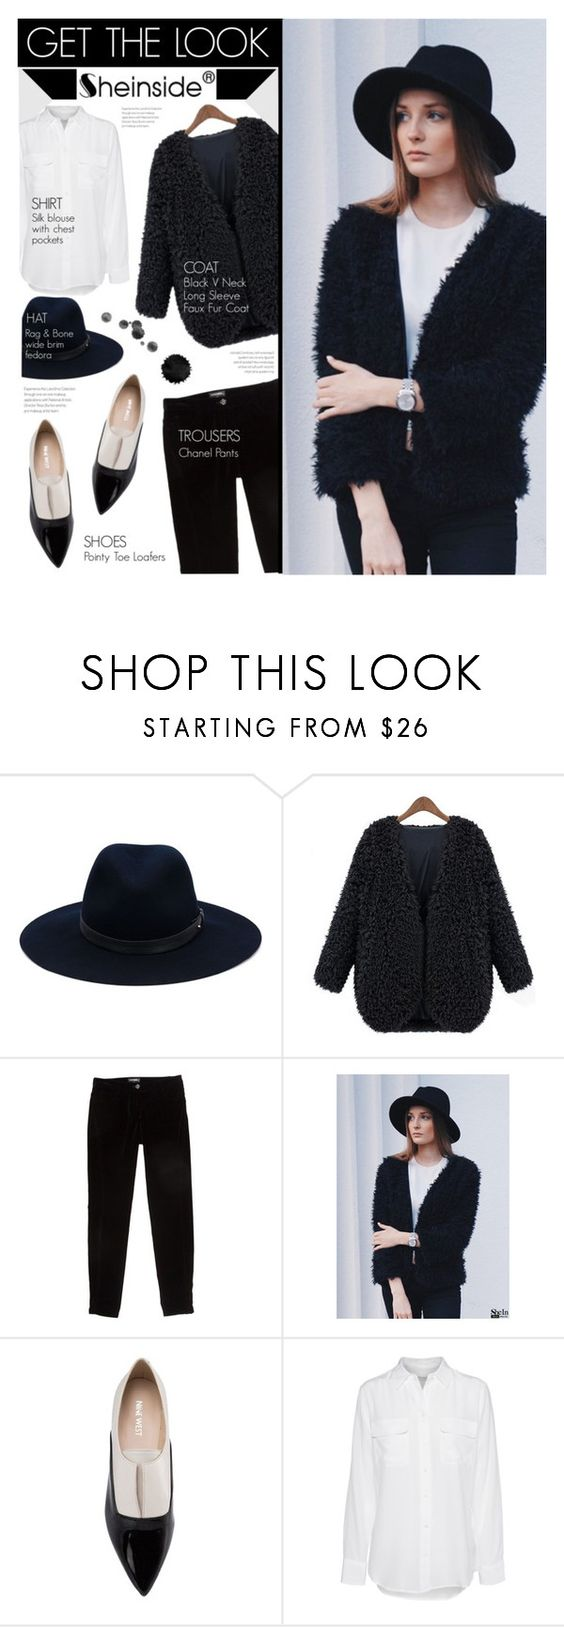 """SheIn Contest"" by stylect ❤ liked on Polyvore featuring rag & bone, Chanel, Nine West and Equipment"